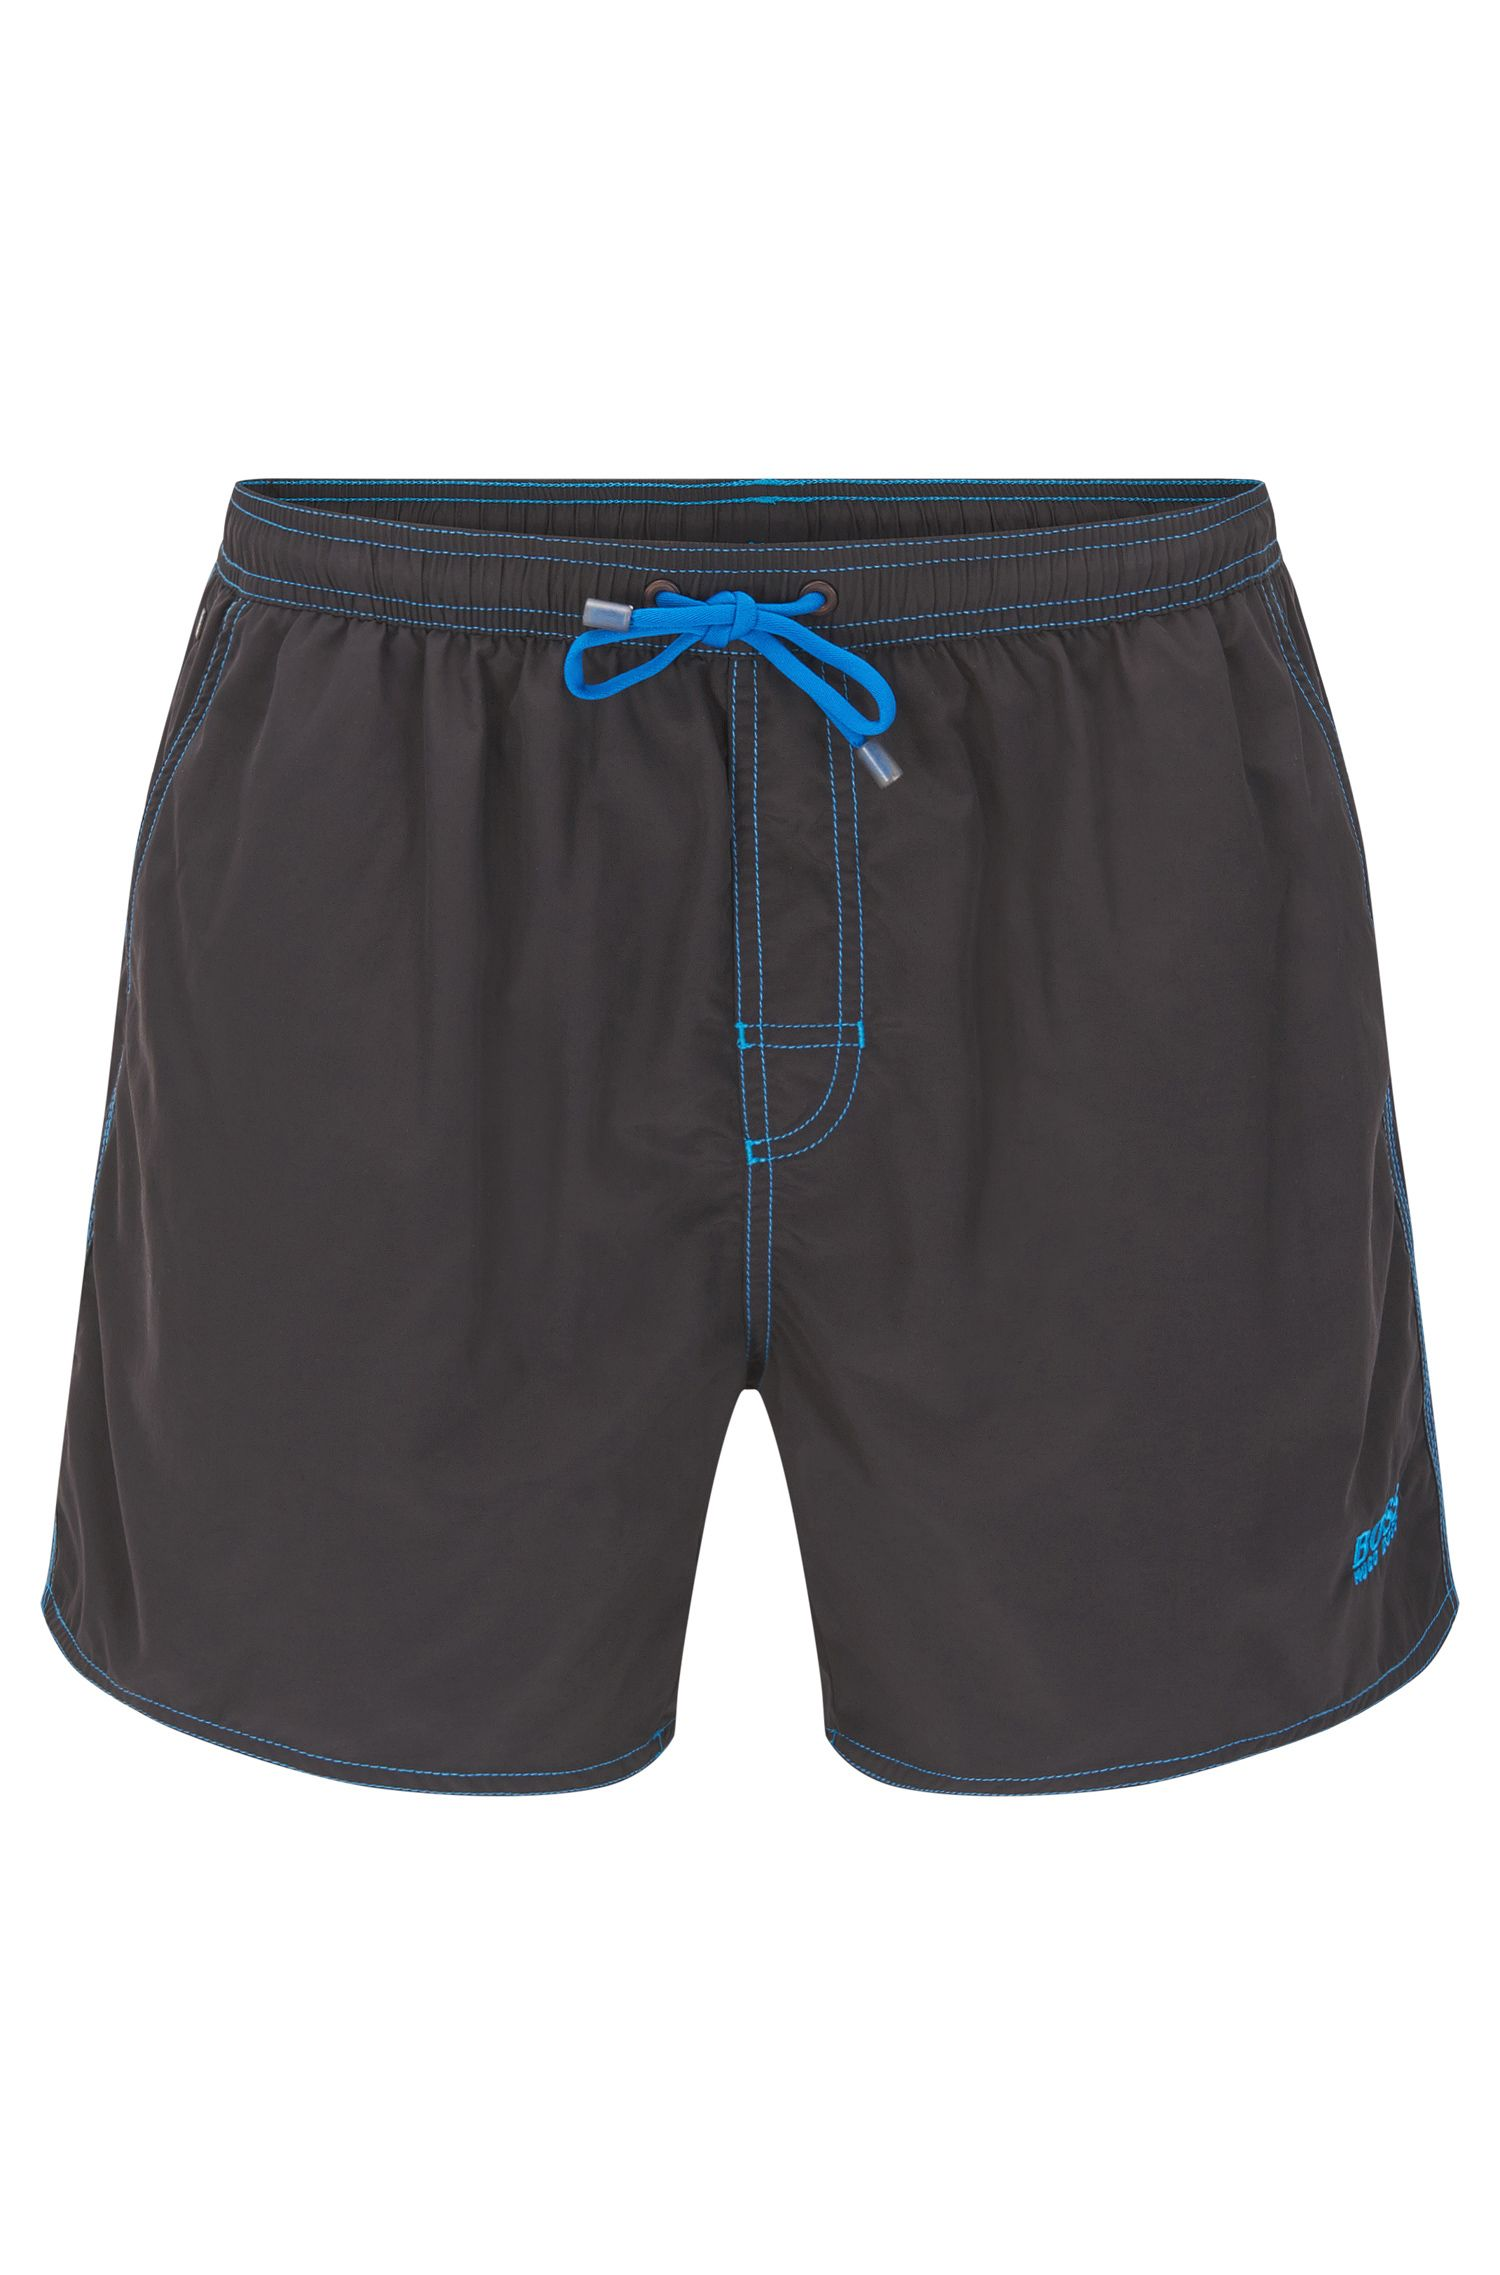 Quick Dry Swim Trunk | Lobster